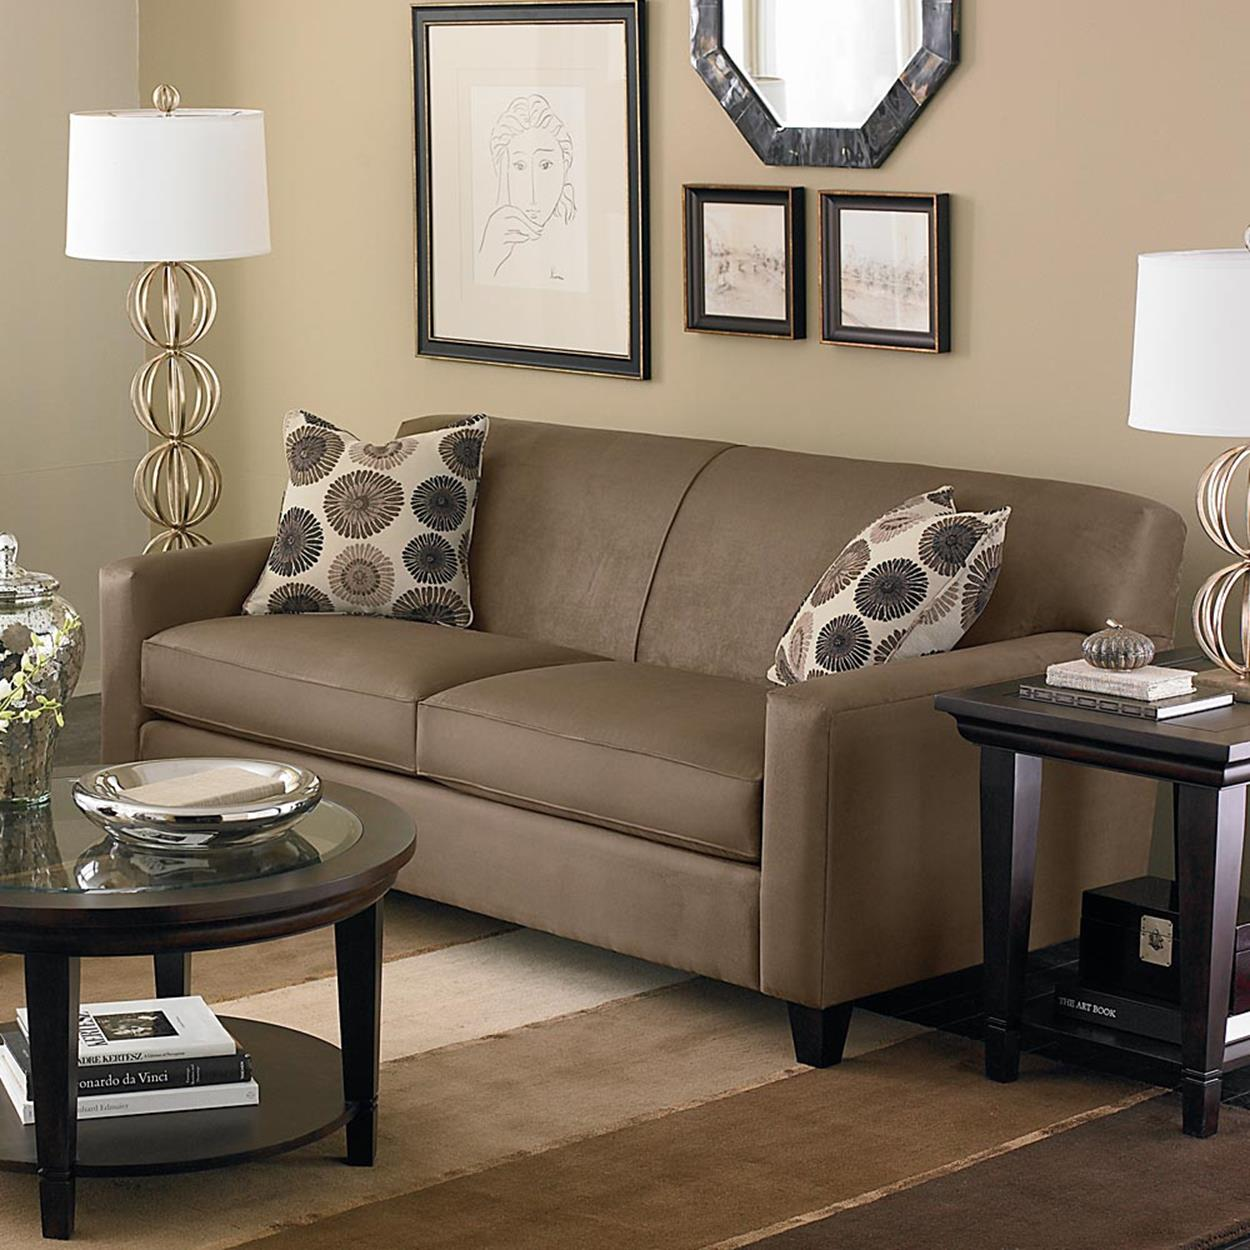 Small Space Furniture Ideas: Living Room Furniture Ideas For Small Spaces 37